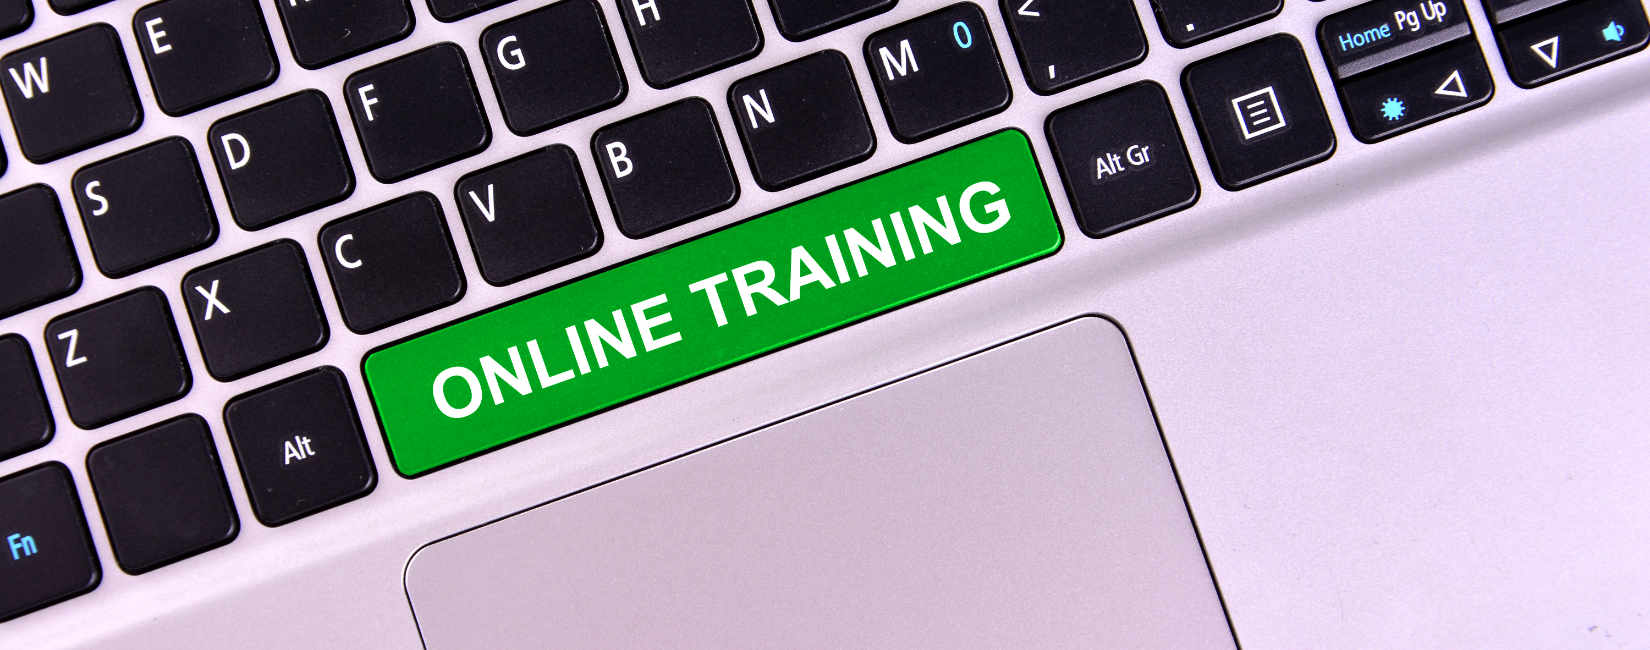 Online fire training course via e-learning